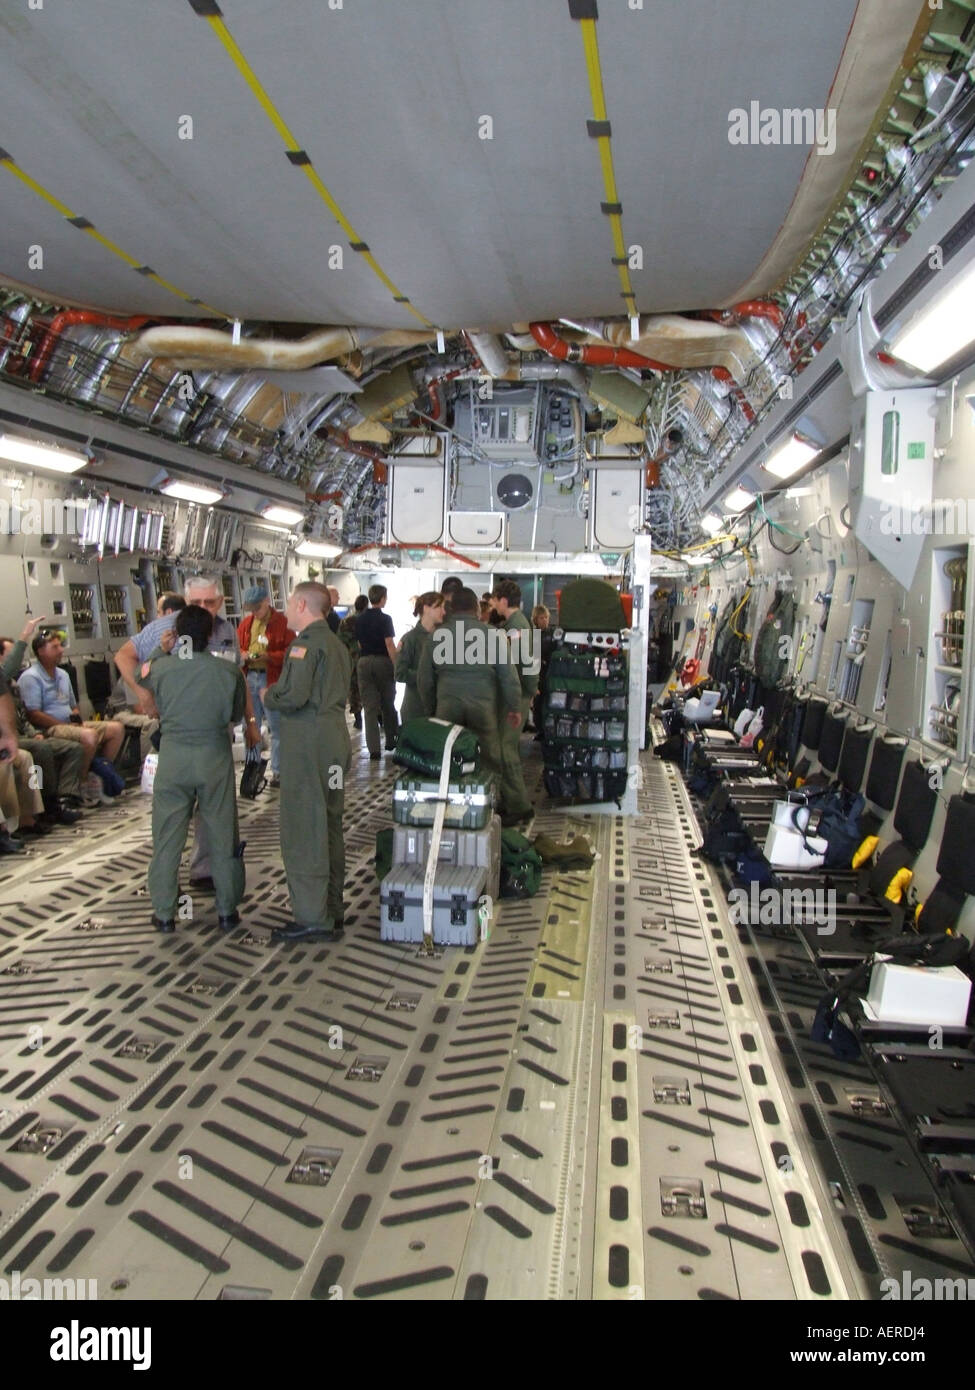 Interior of C130 Military Aircraft on tarmac at McGuire ...